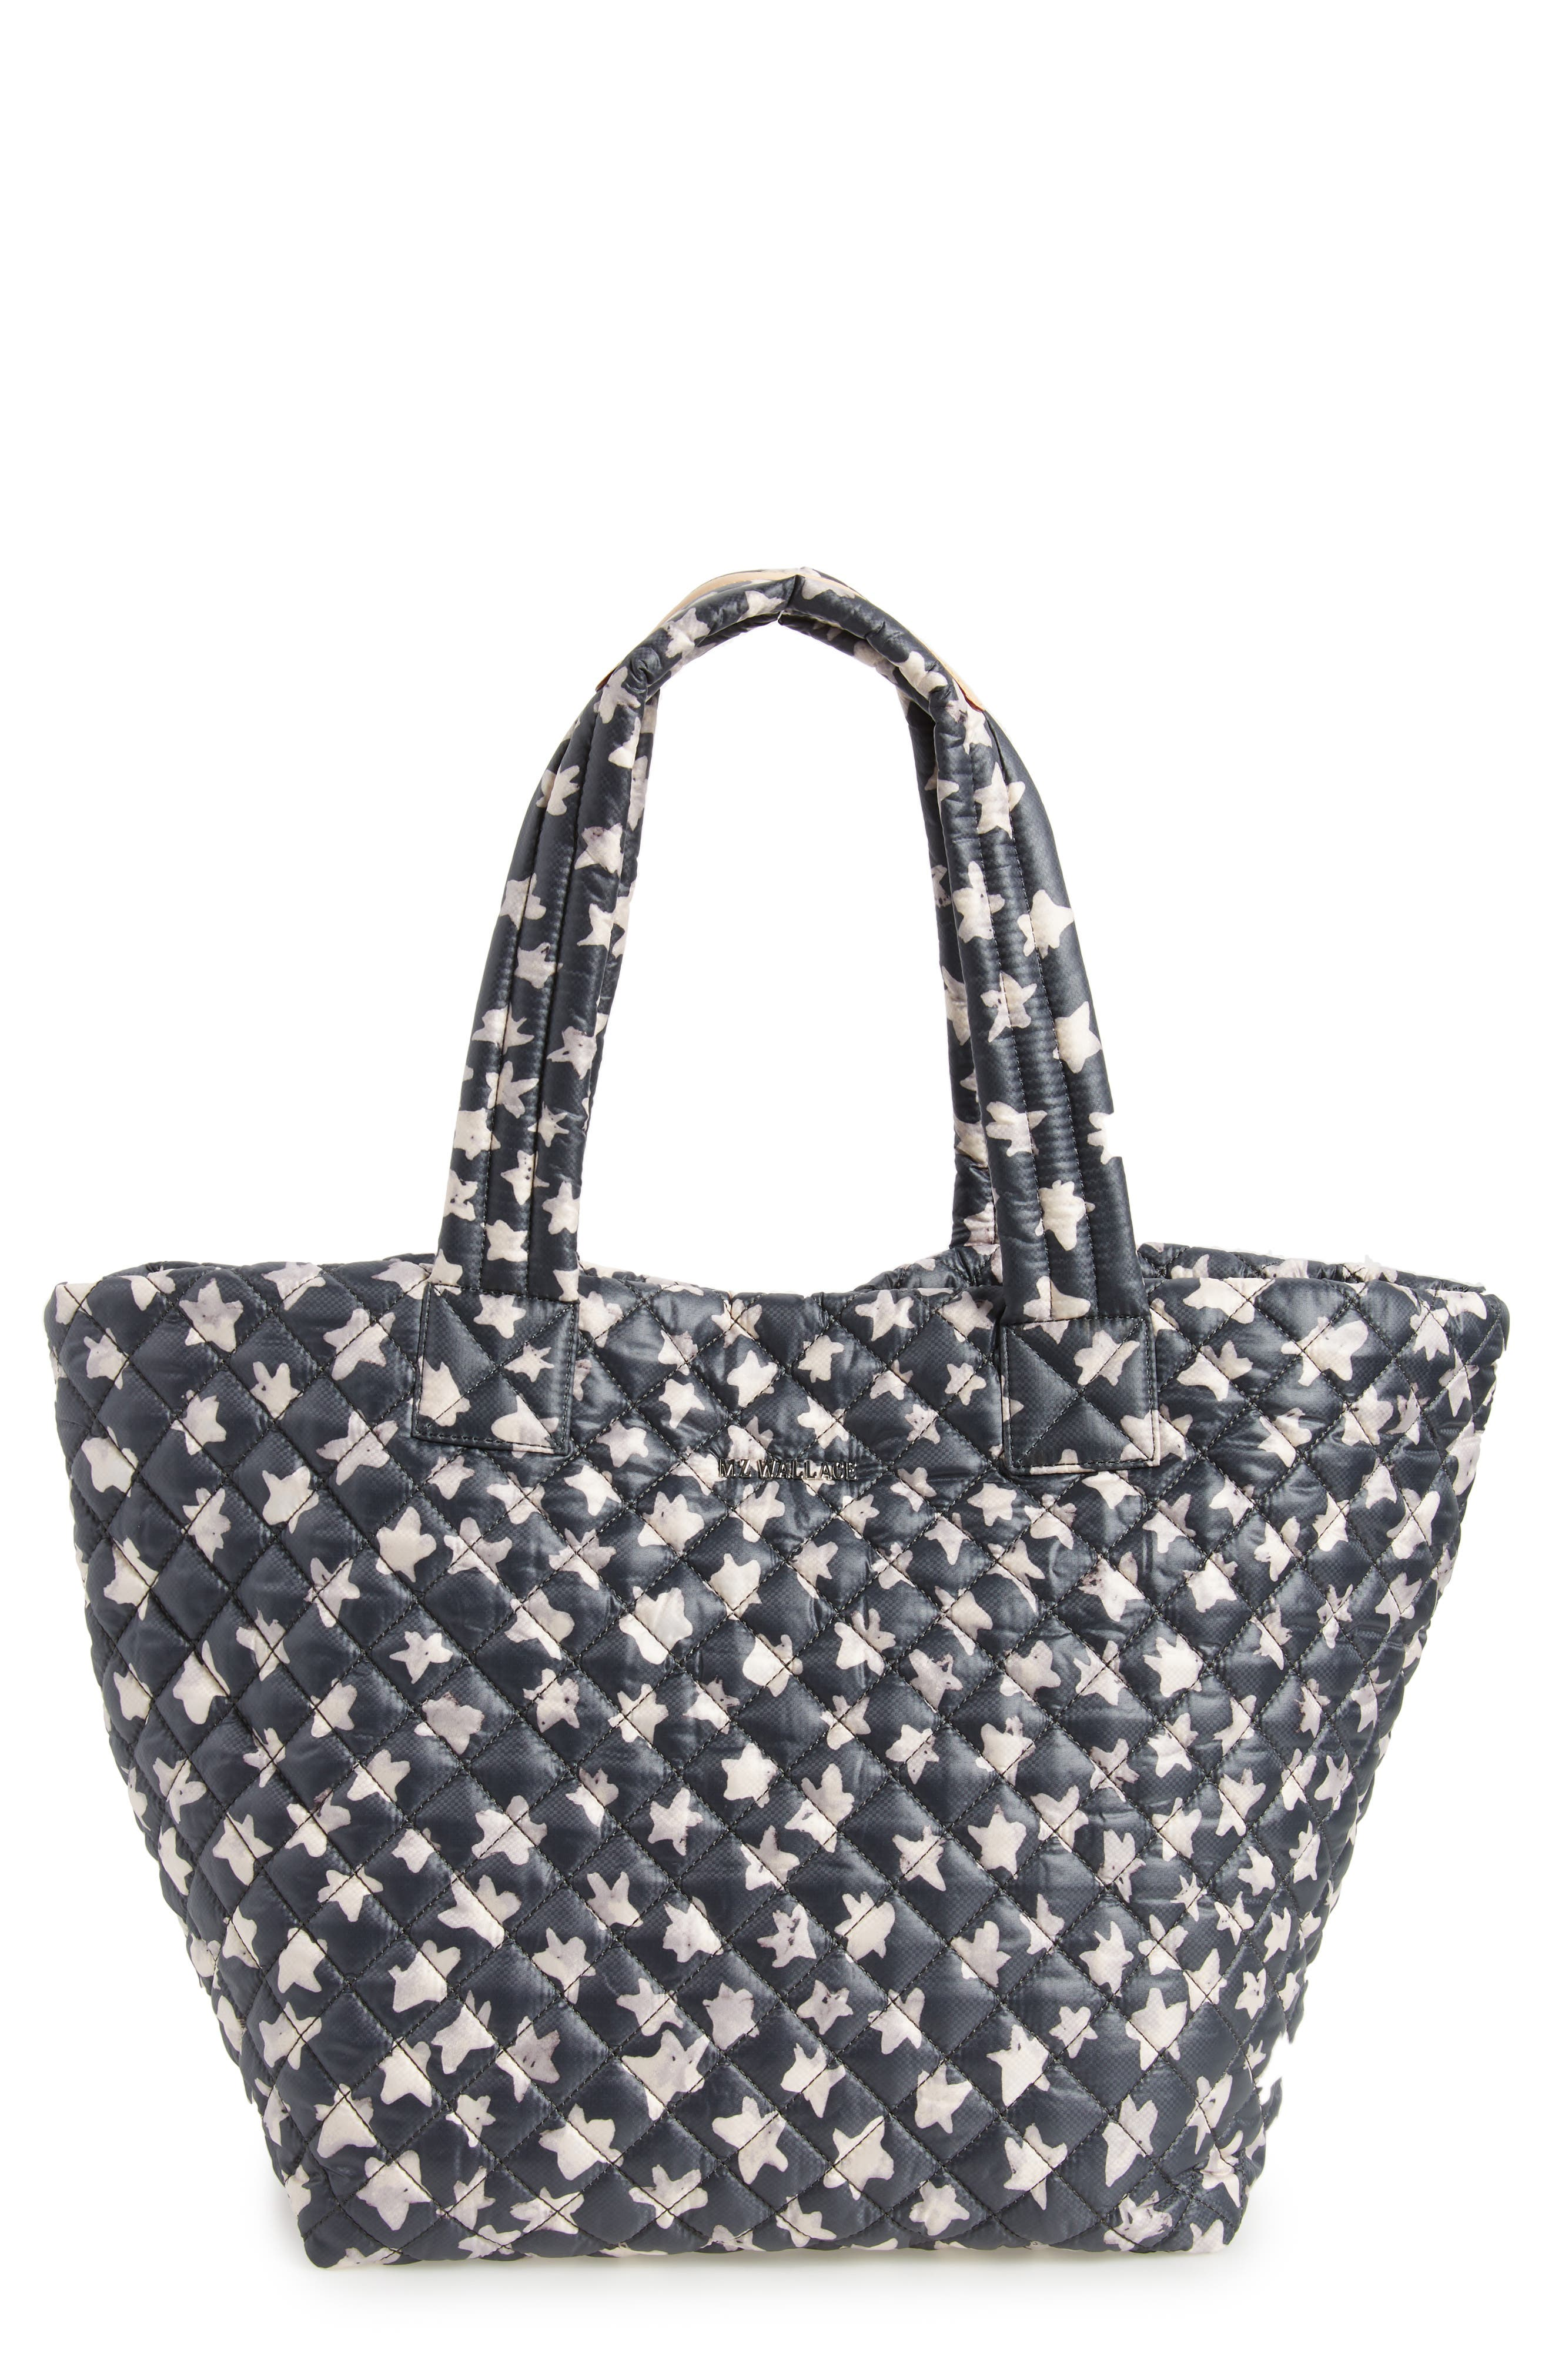 MZ Wallace 'Medium Metro' Quilted Oxford Nylon Tote